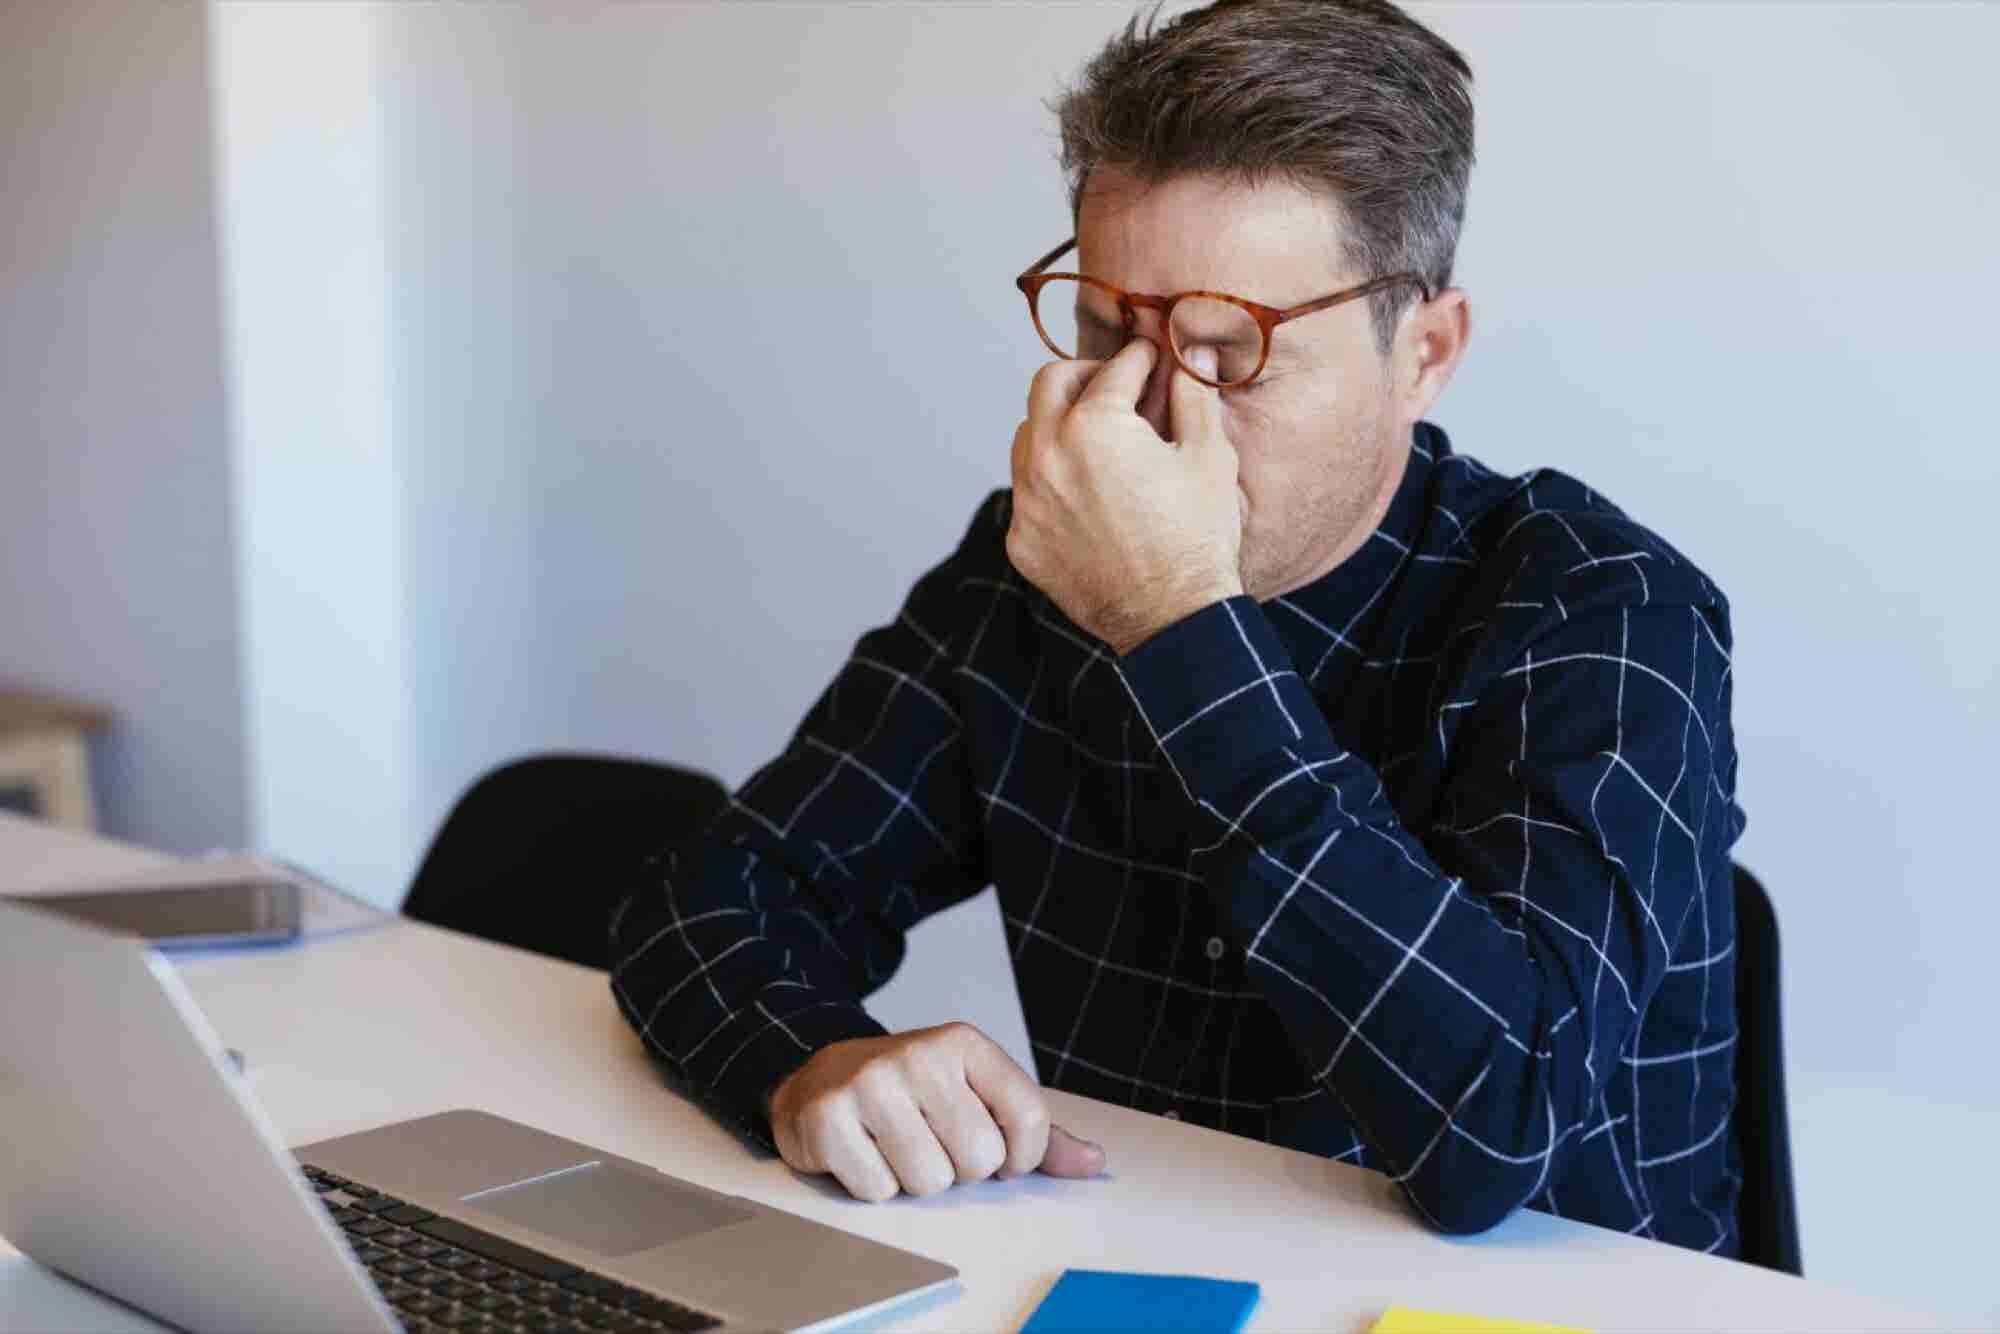 5 Things Entrepreneurs Do Mindlessly Every Day That Sabotage Their Success